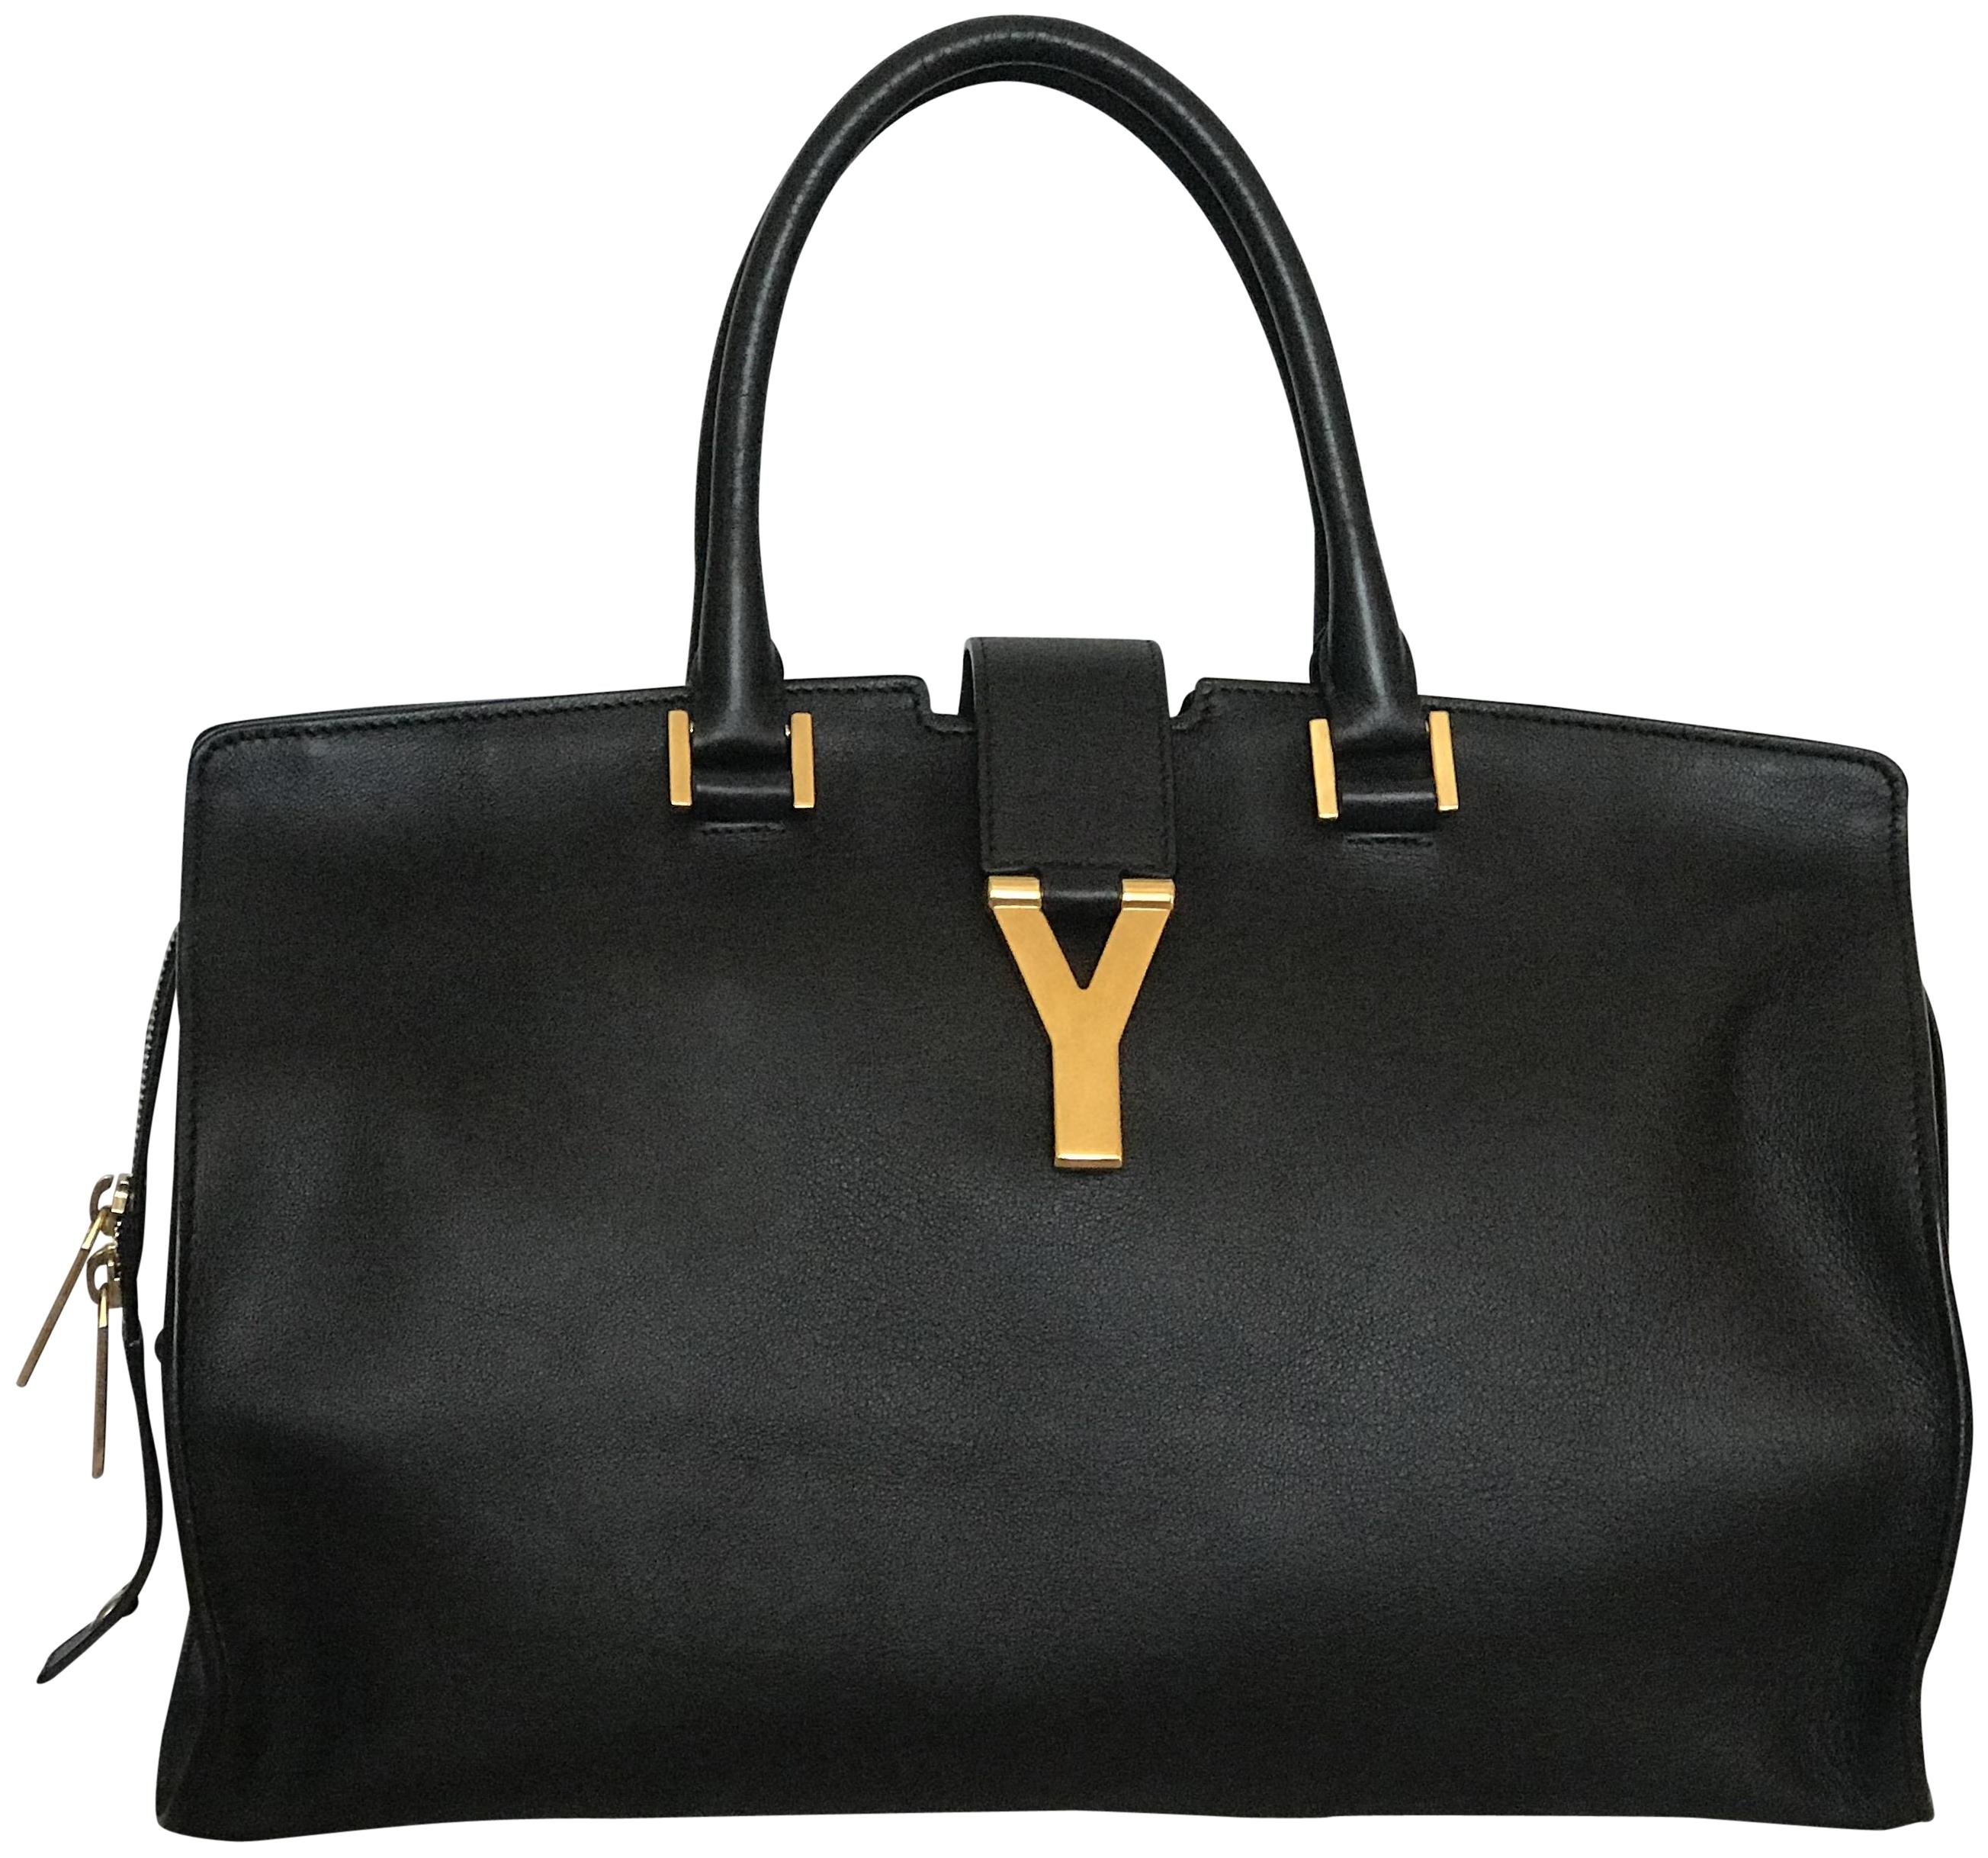 Saint Laurent Pre-owned - Leather tote PvPpwNC6